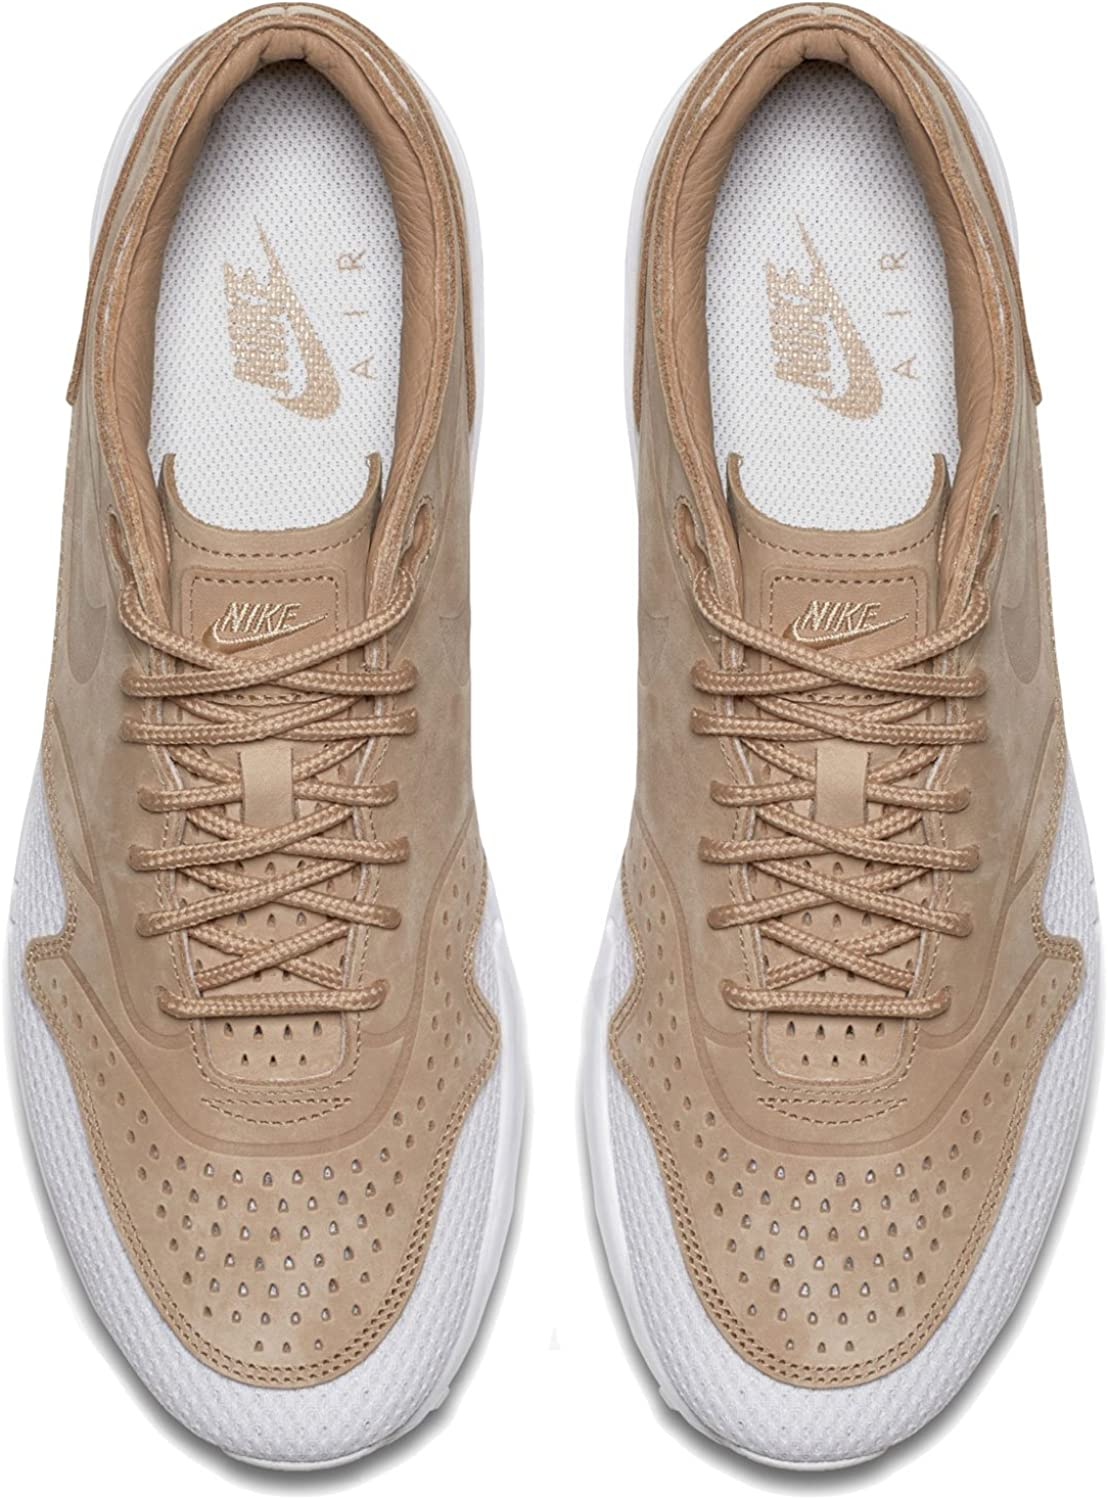 Nike Men s Air MAx 1 Ultra 2.0 Premium BR Vachetta Tan AO2449-200